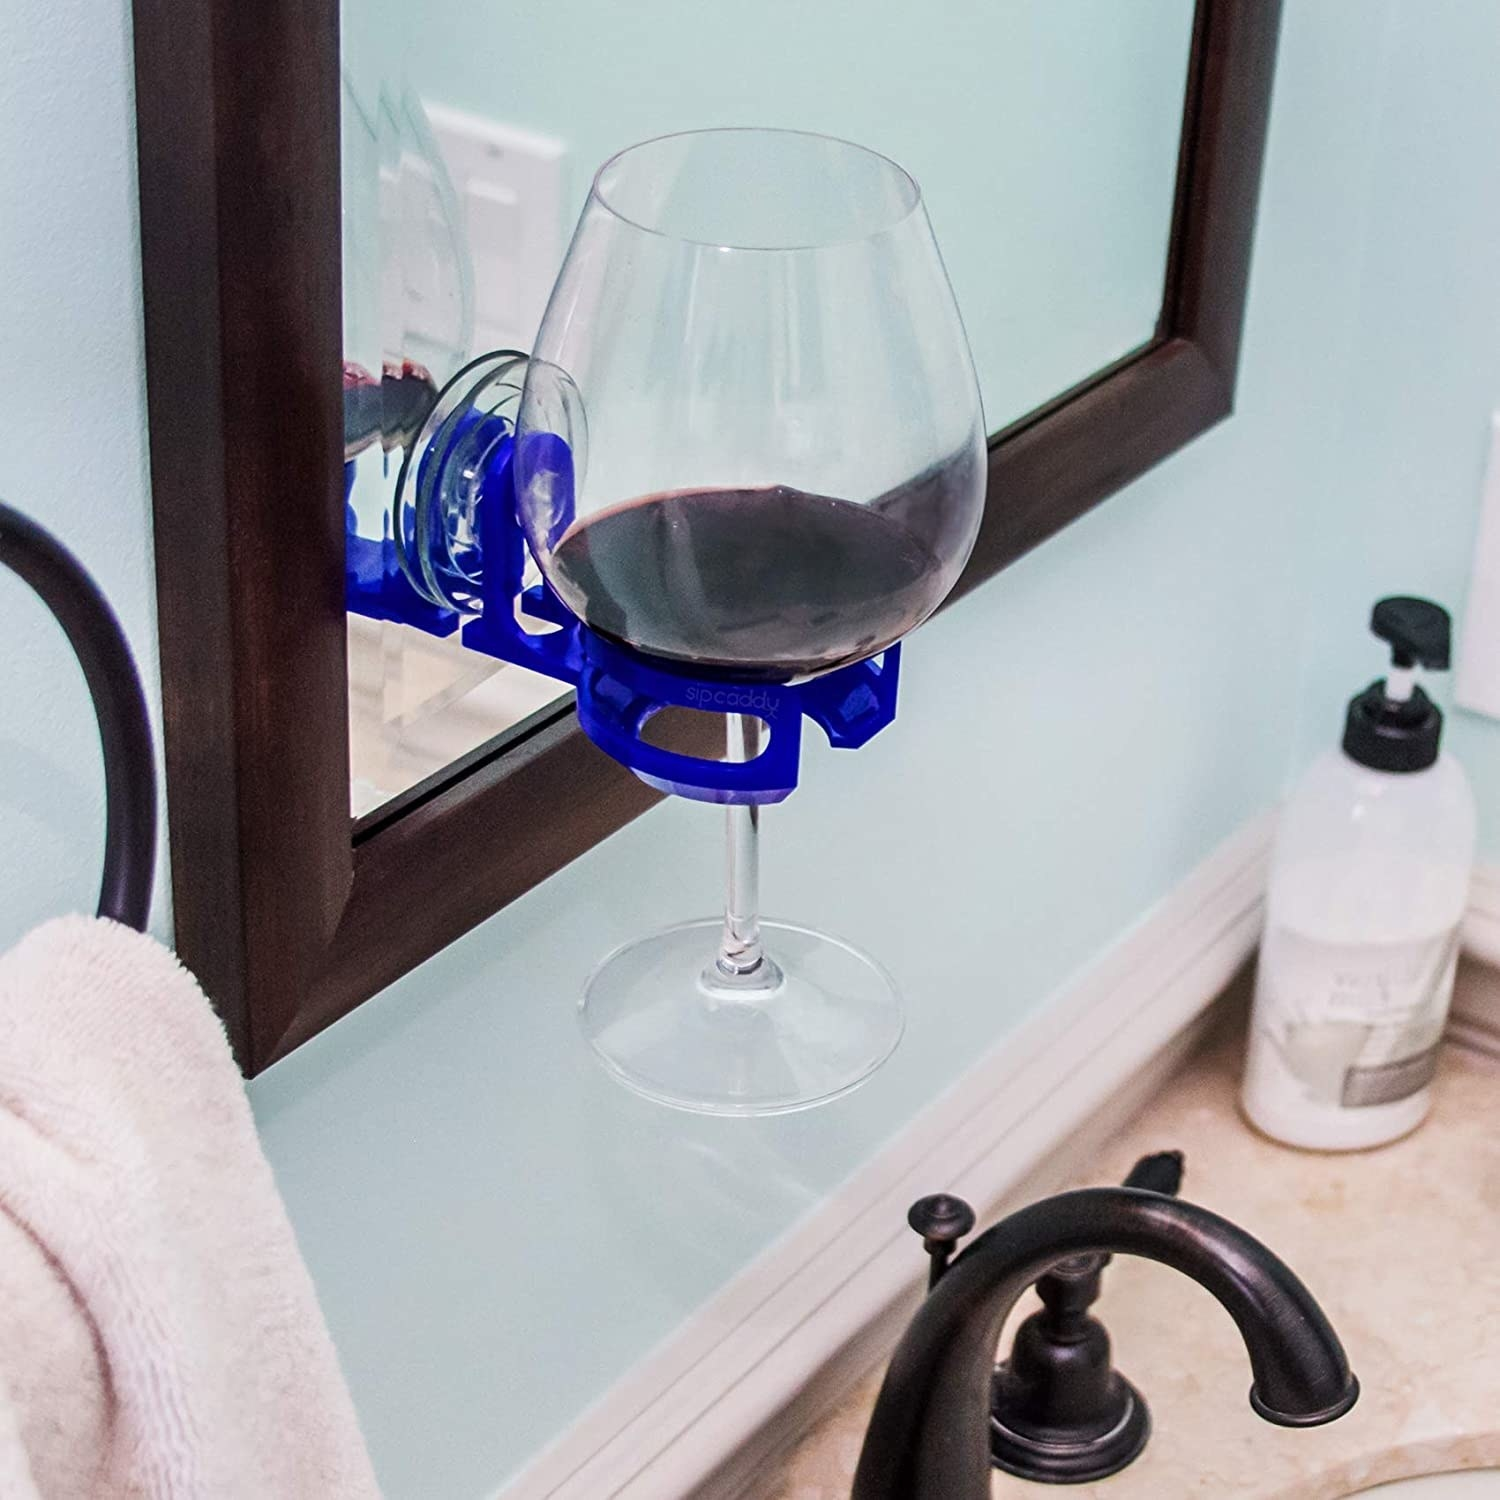 The holder attached to a mirror with a wine glass in it